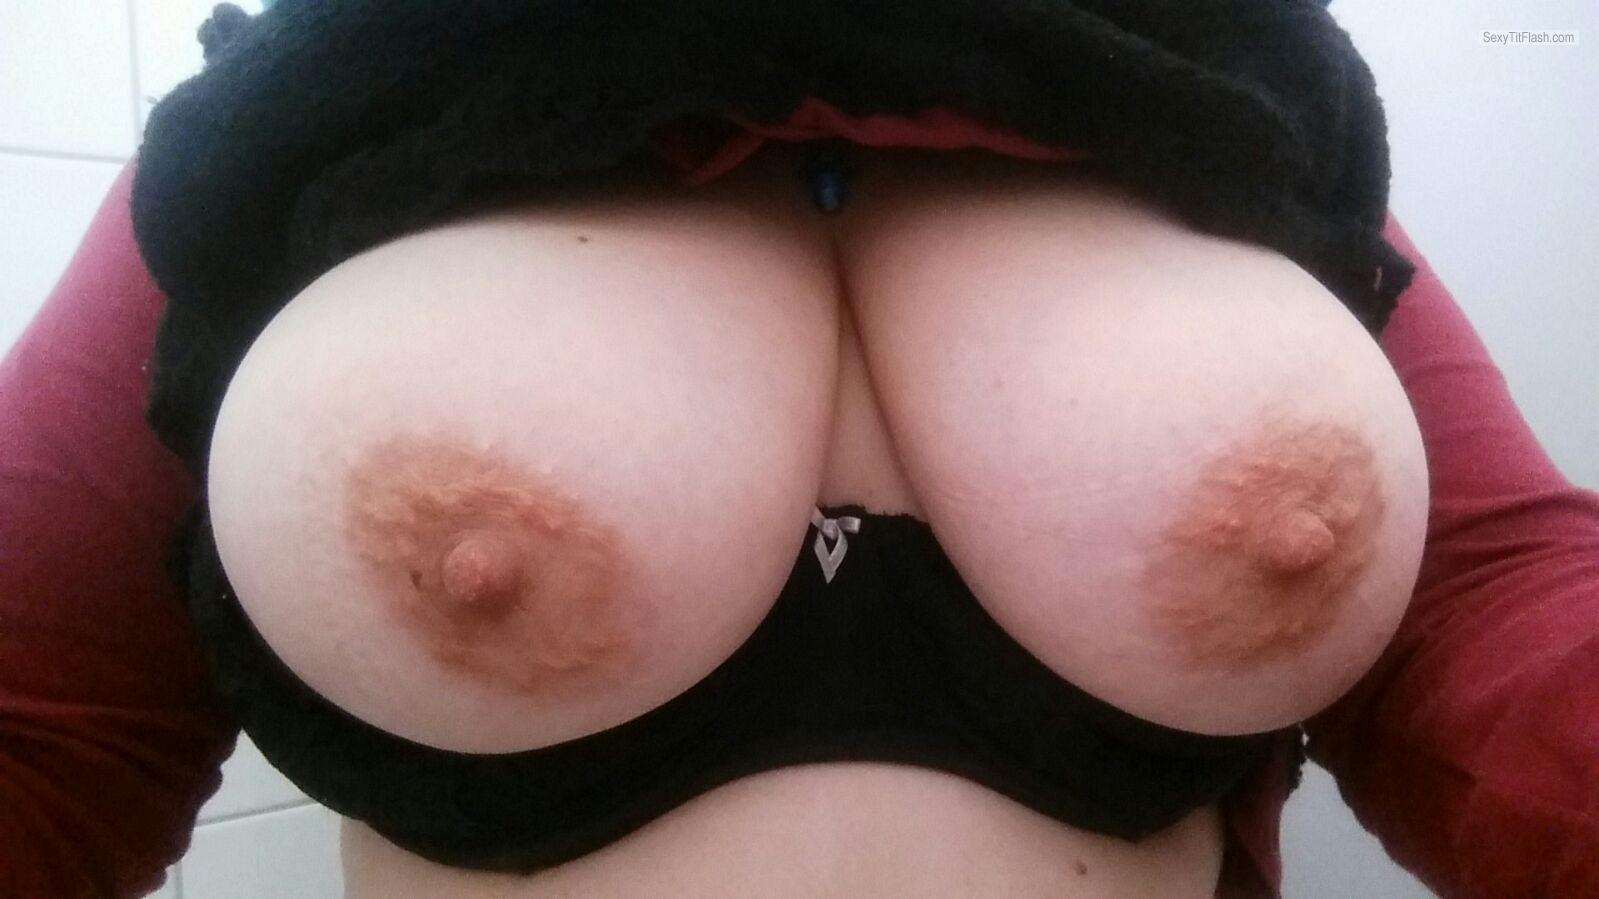 My Big Tits Selfie by Ehesau